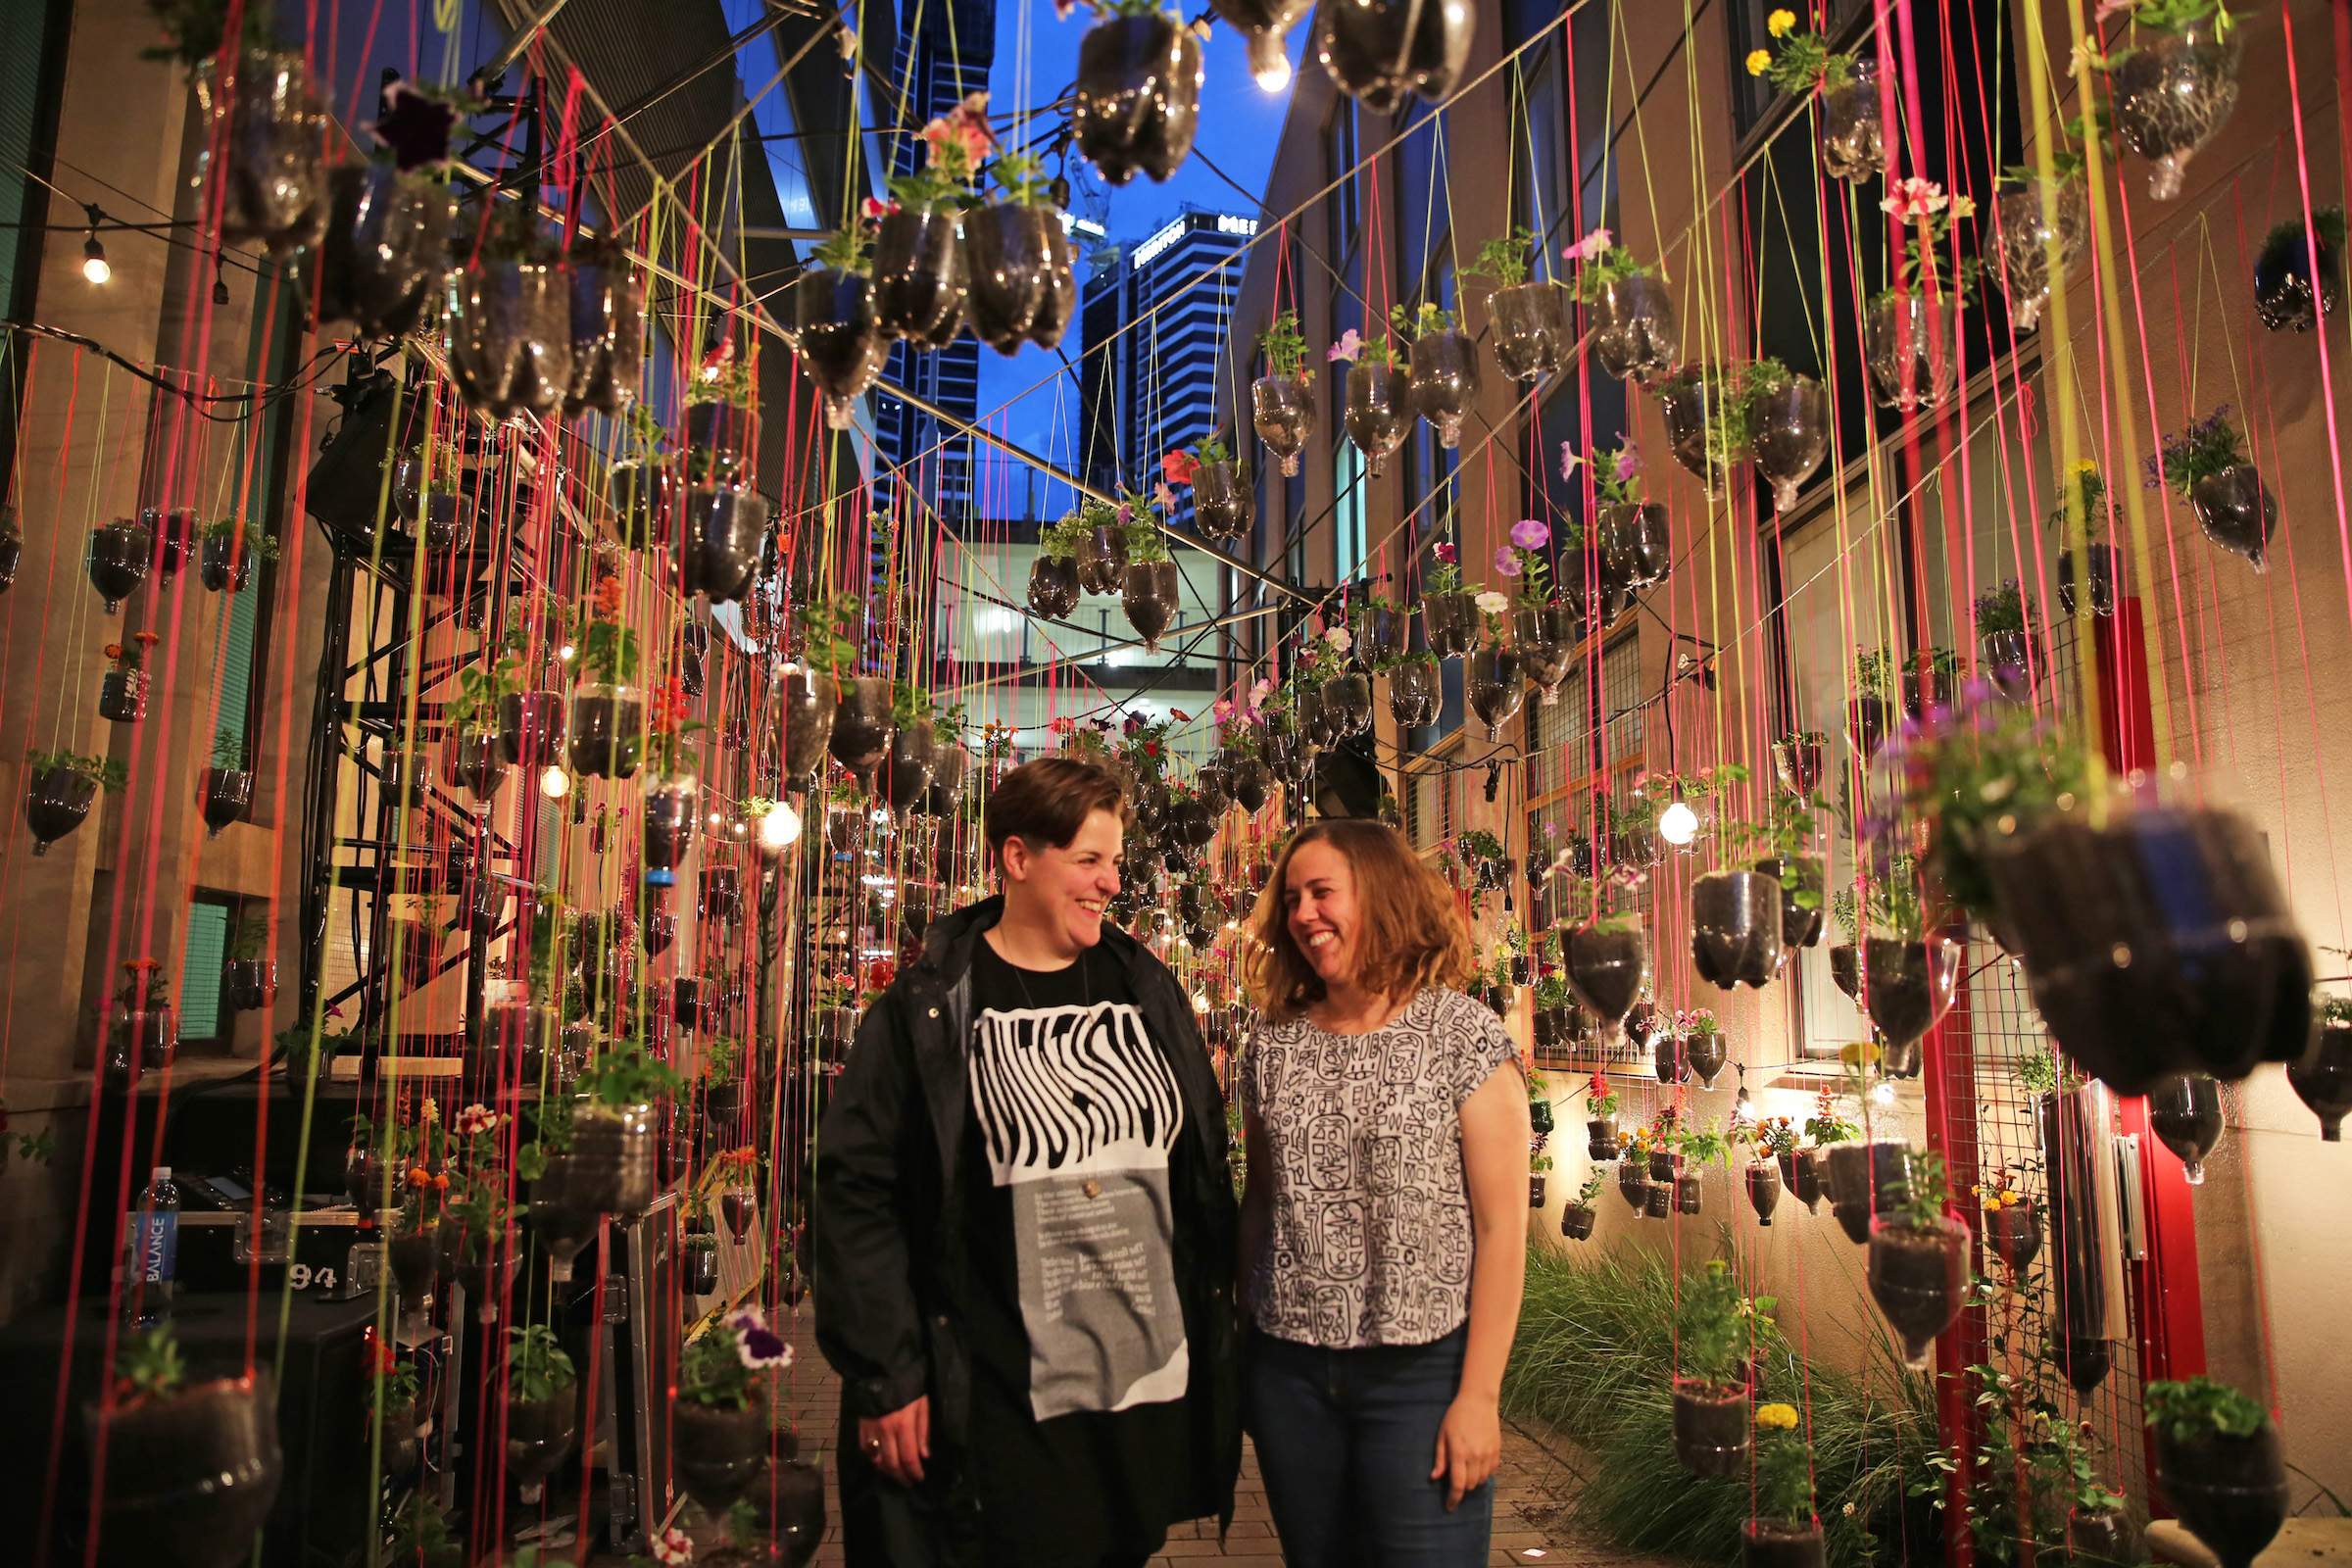 an immersive and interactive artwork created by artists anna mcmahon and annie mckinnon. working with the parramatta community, the artists created over 1000 hanging planters out of recycled plastics housing a range of edible and lifestyle plants. an interactive sound trail was created through the hanging garden featuring interviews with local school children involved in the project. commissioned by the city of parramatta council and supported through the NSW environment protection authority.